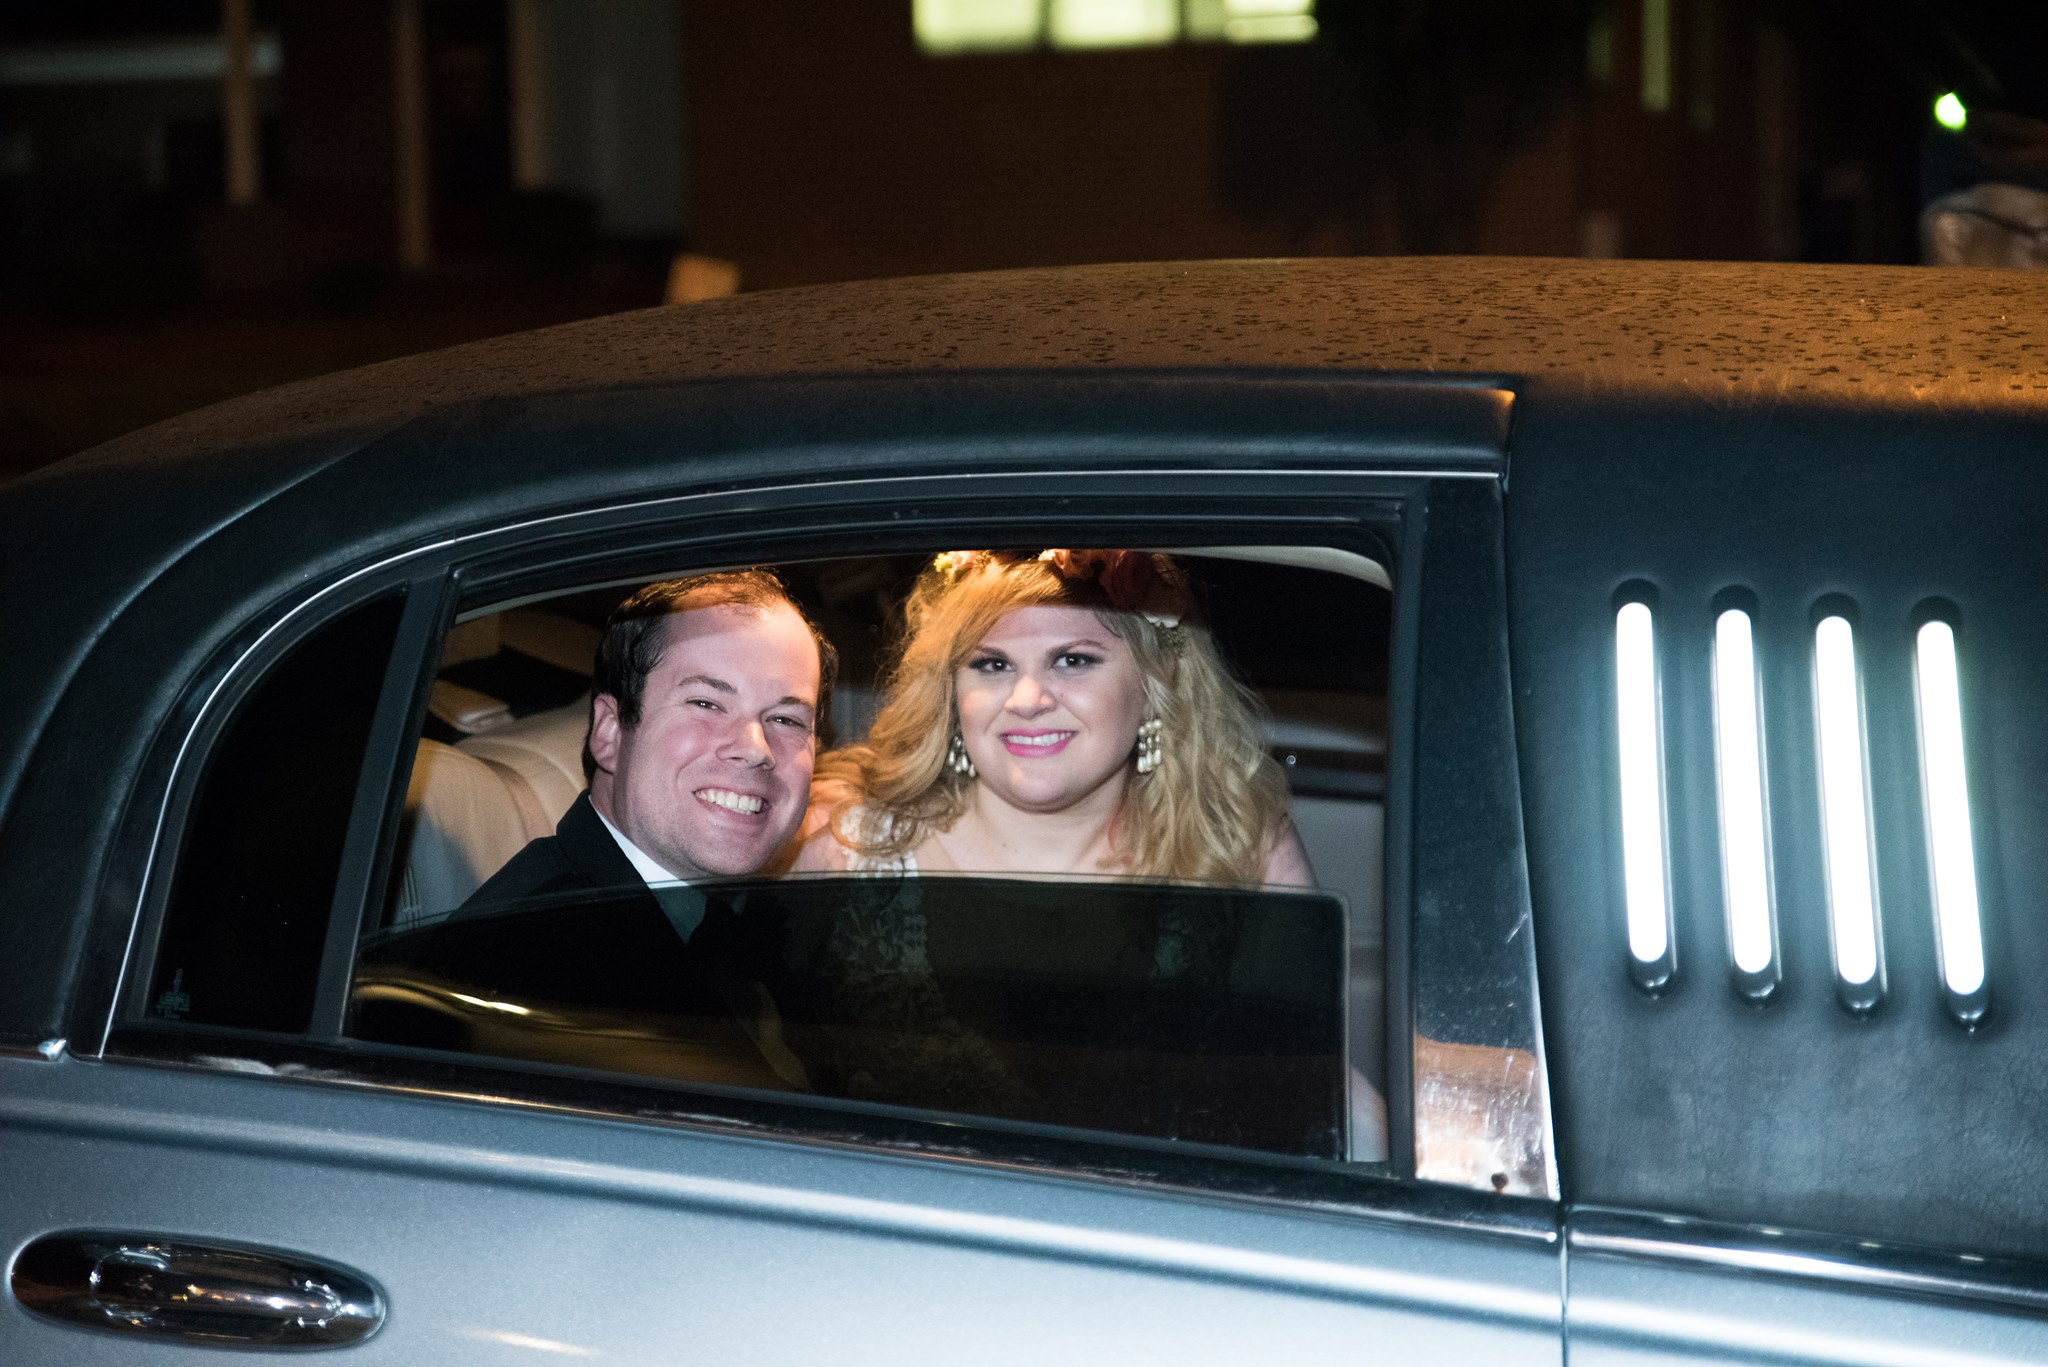 Bride and groom departing from their wedding at Spark Mansion in a Royal Limo